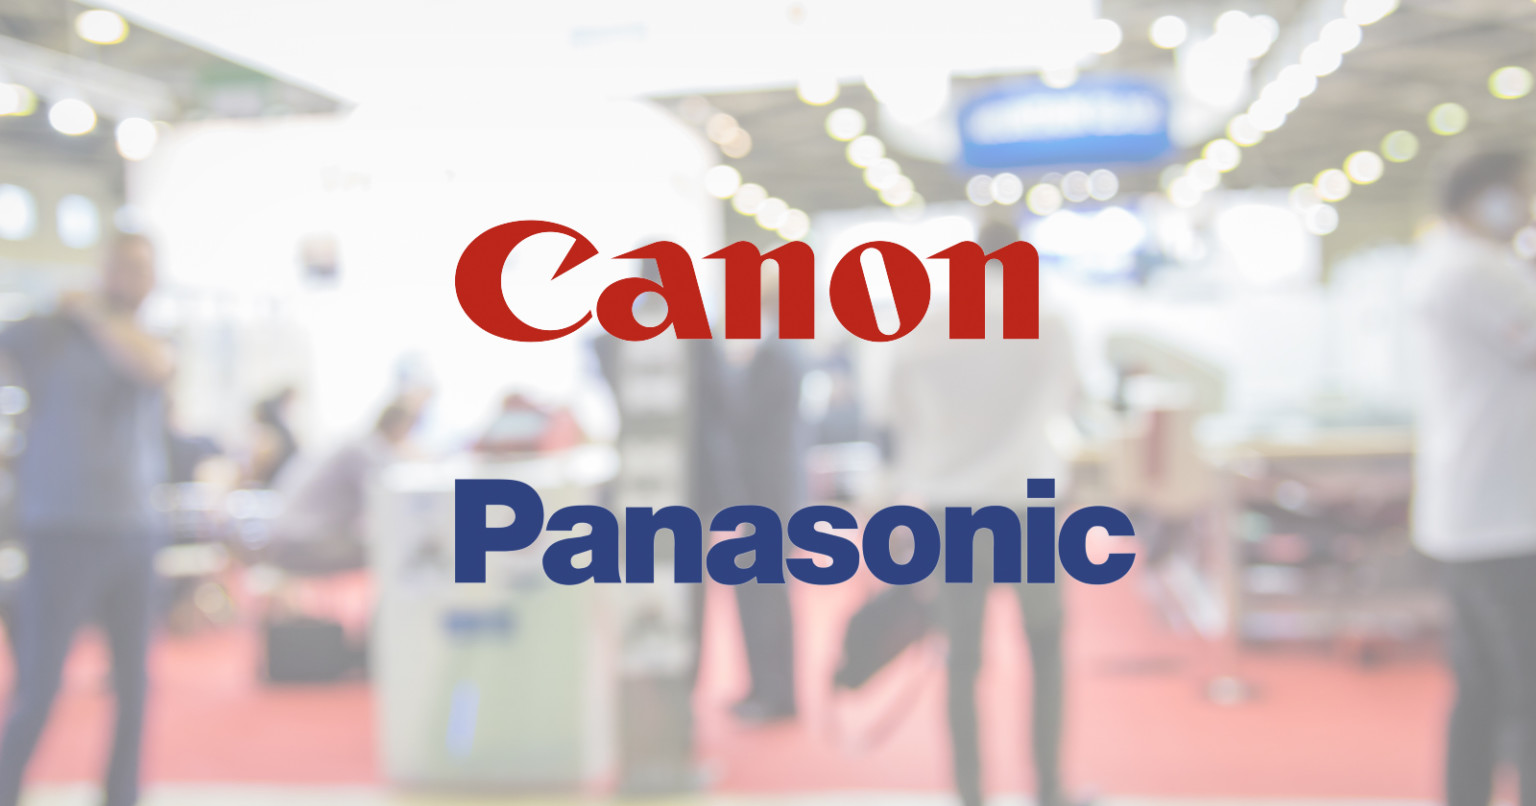 Canon-and-Panasonic-Drop-Out-of-NAB-Due-to-COVID-19-Concerns-1536x806